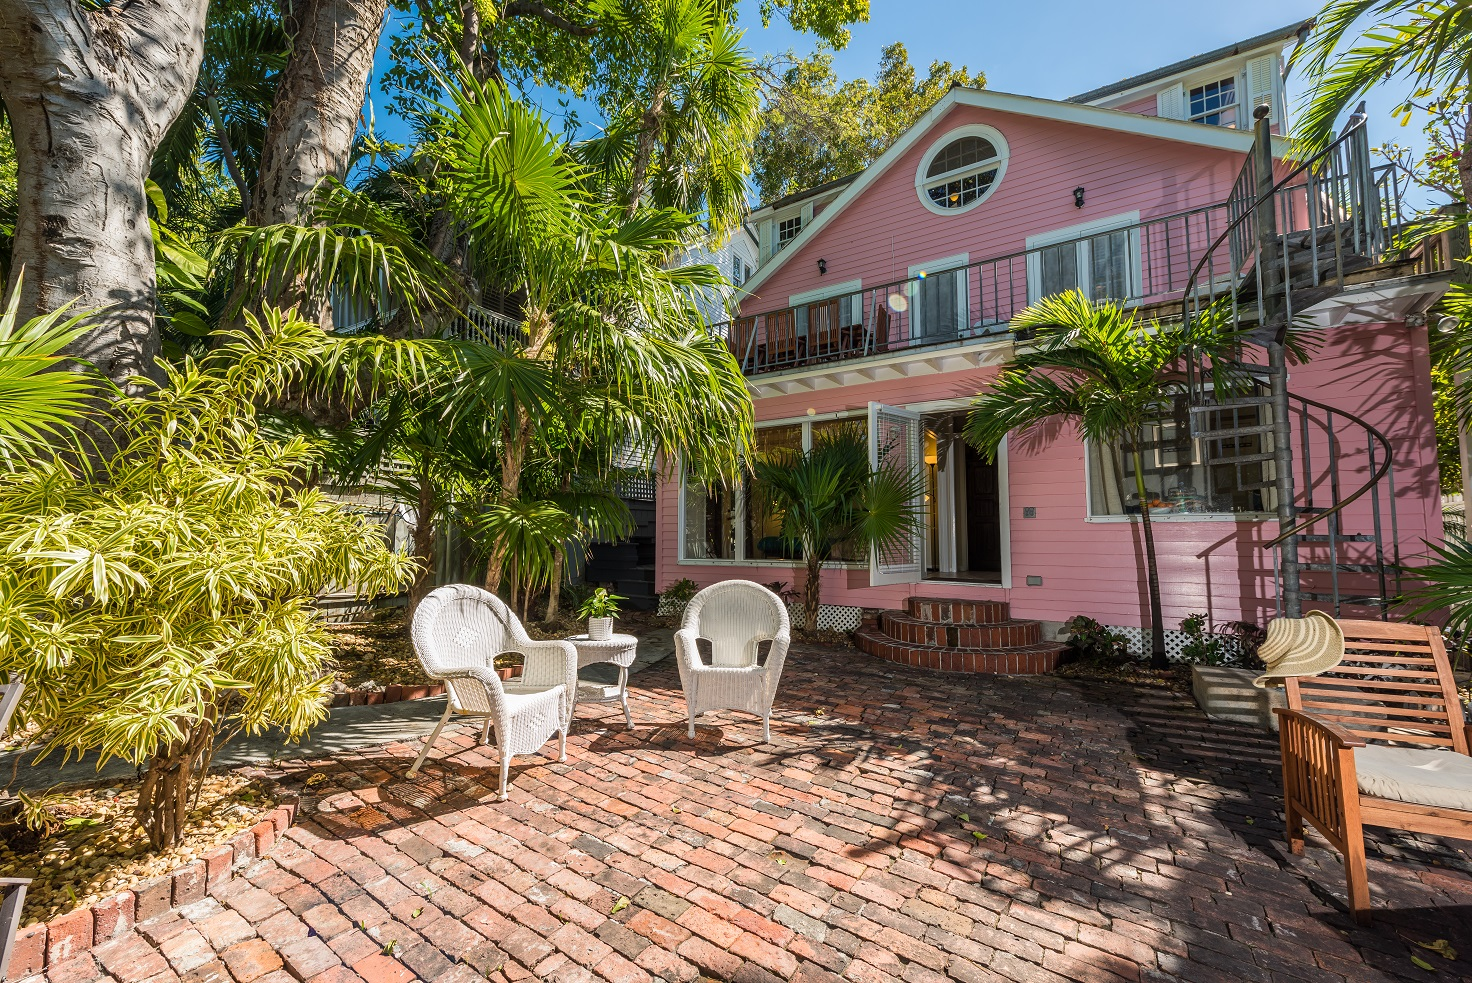 Key West Vacation Home - William Skelton House - Backyard of Home